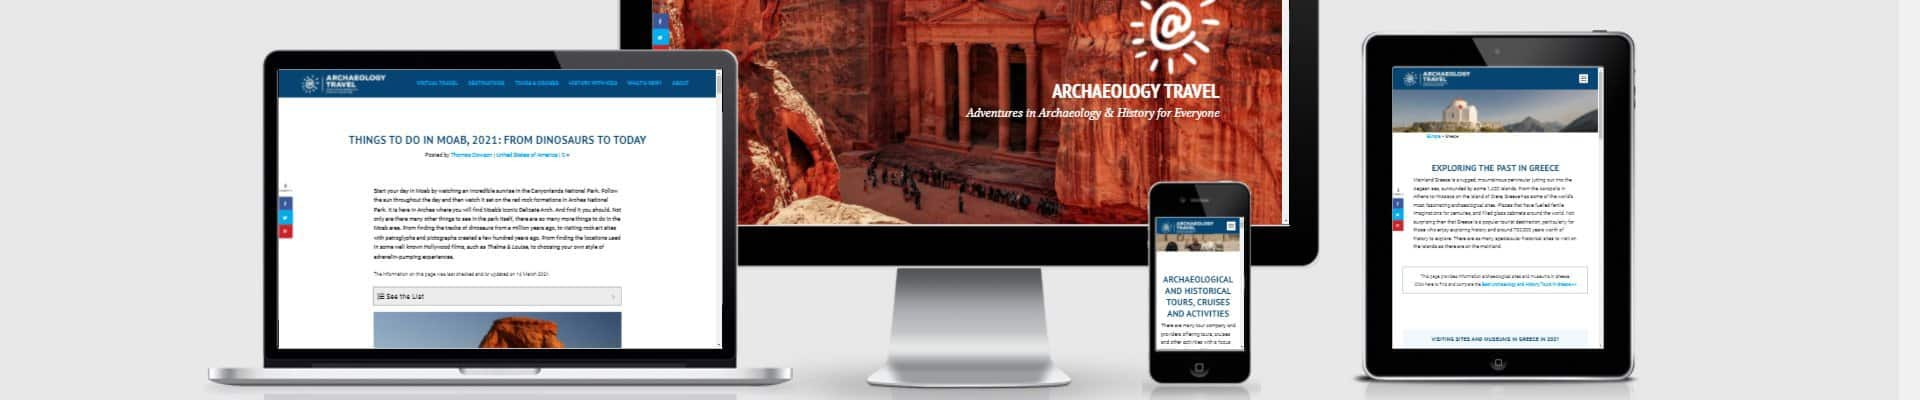 Archaeology Travel | About | 6